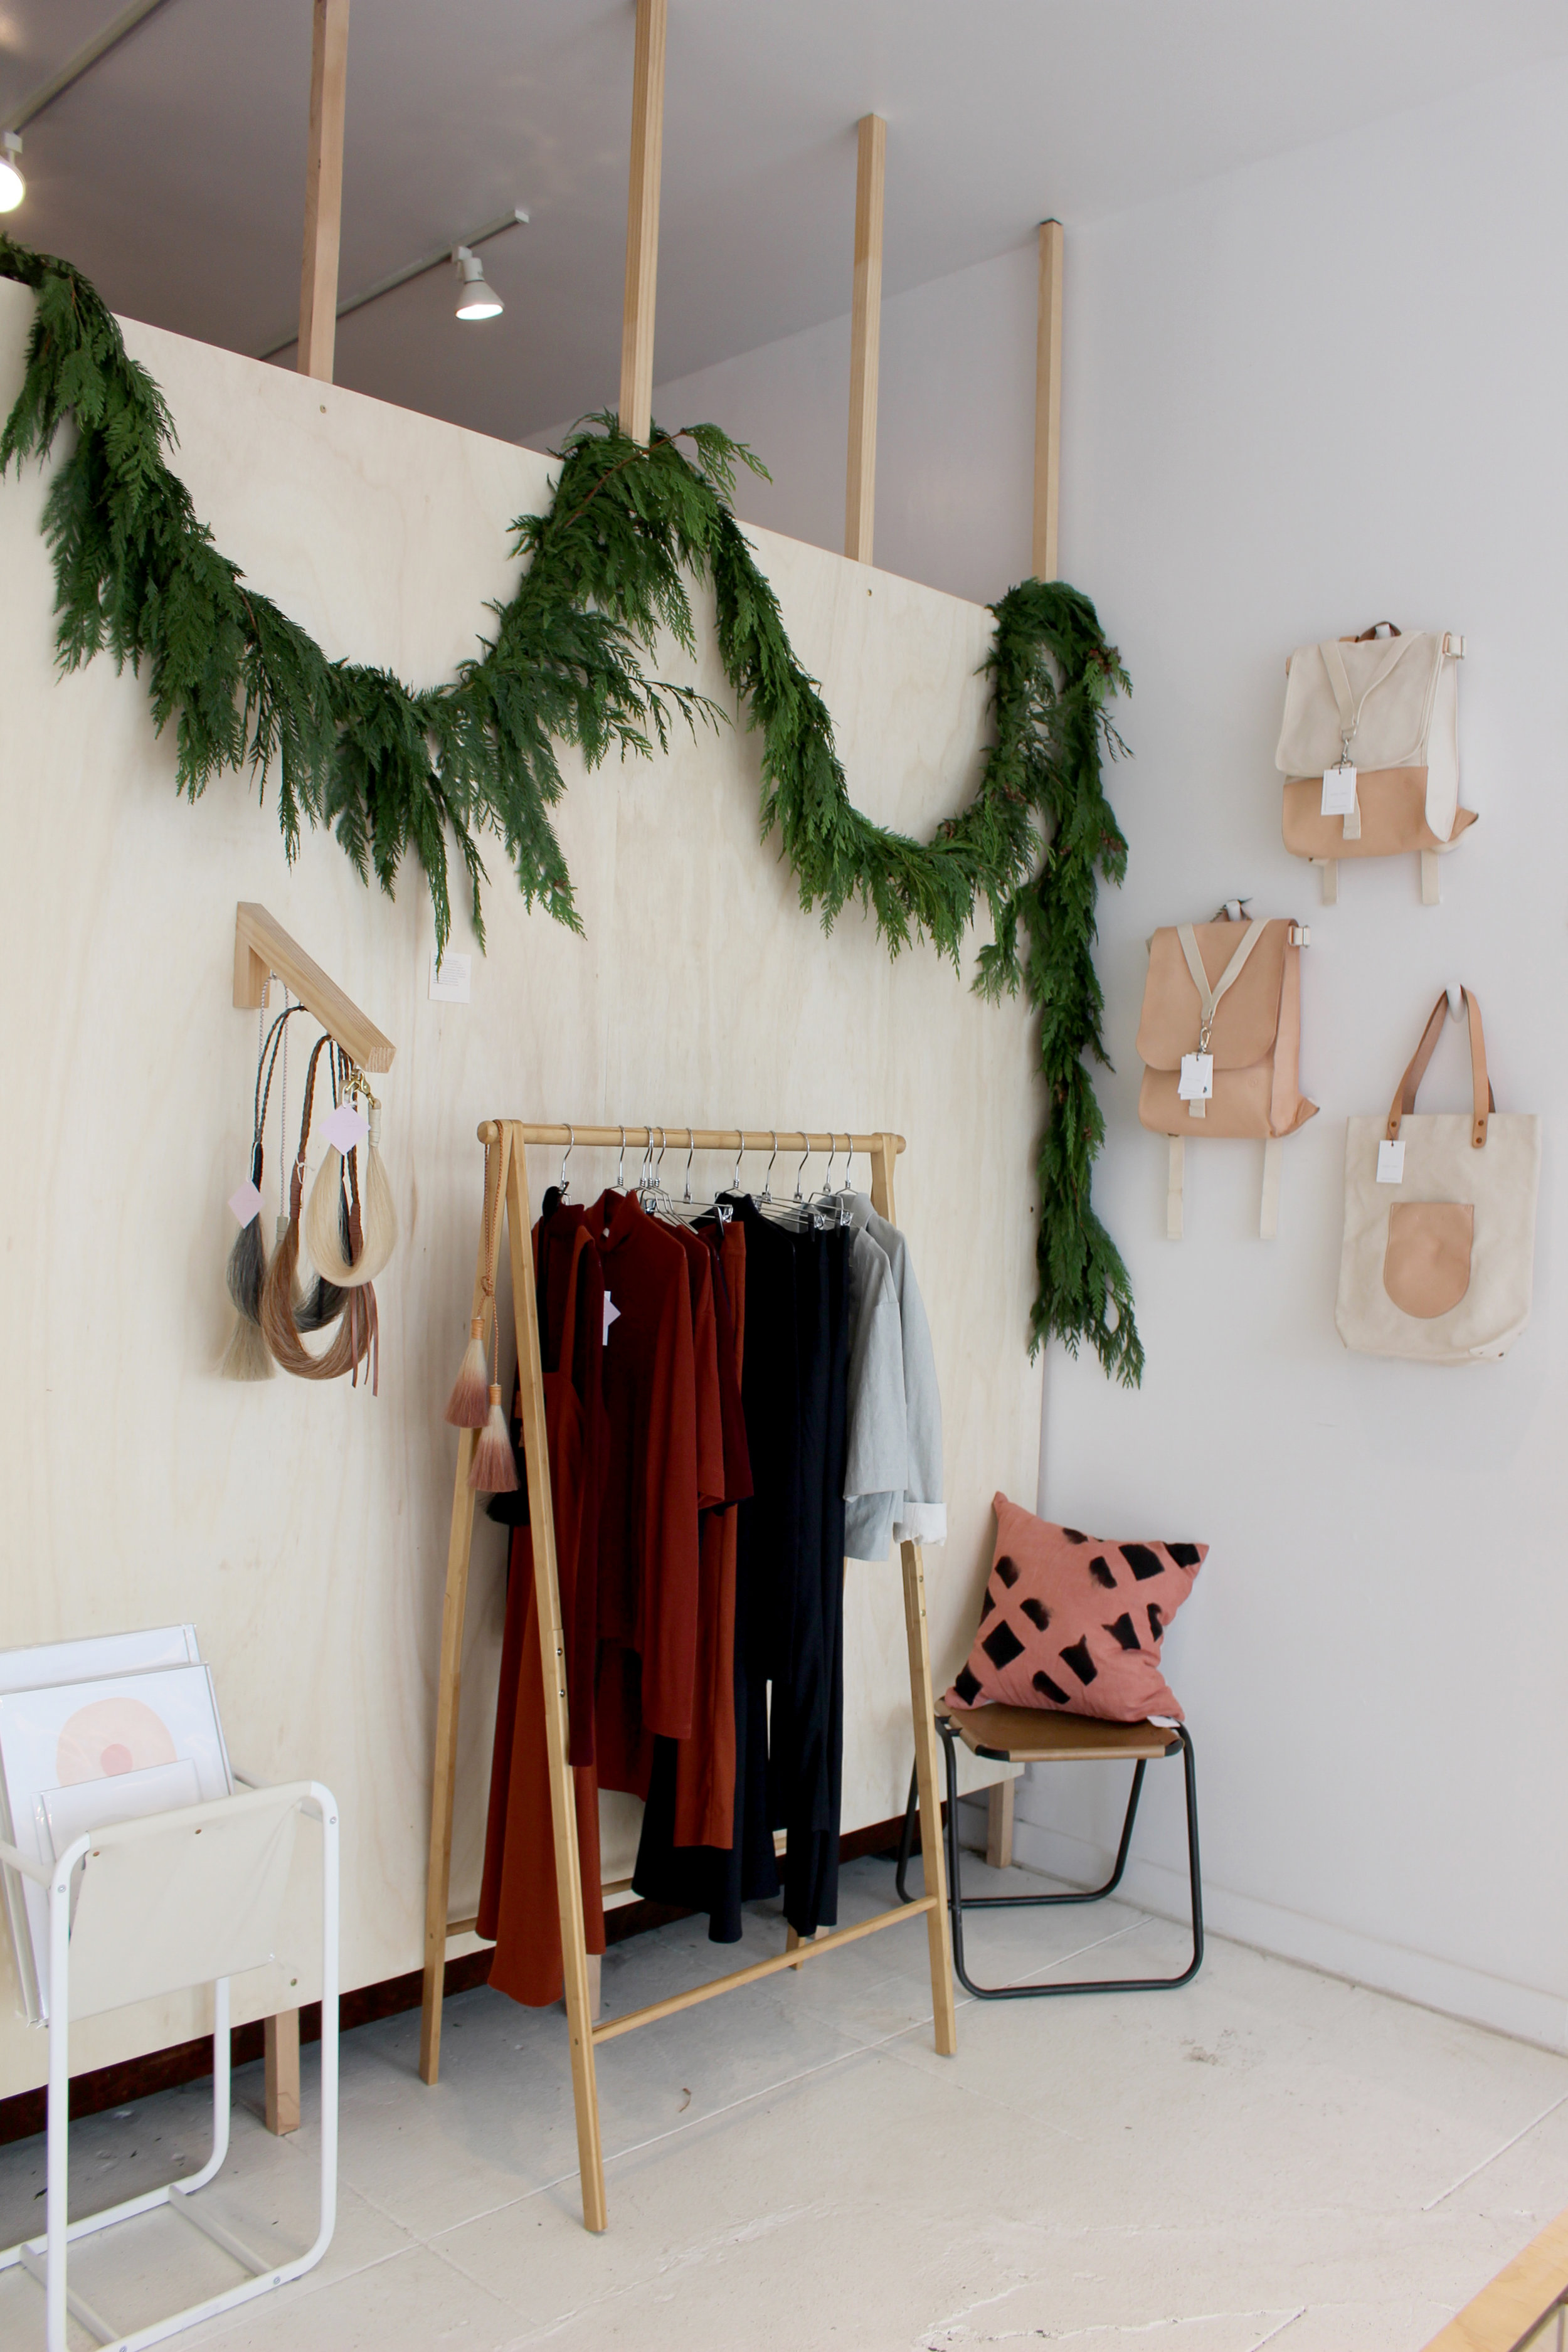 Waltz clothing, Golden Pony Necklaces and bags by Materials and Process.